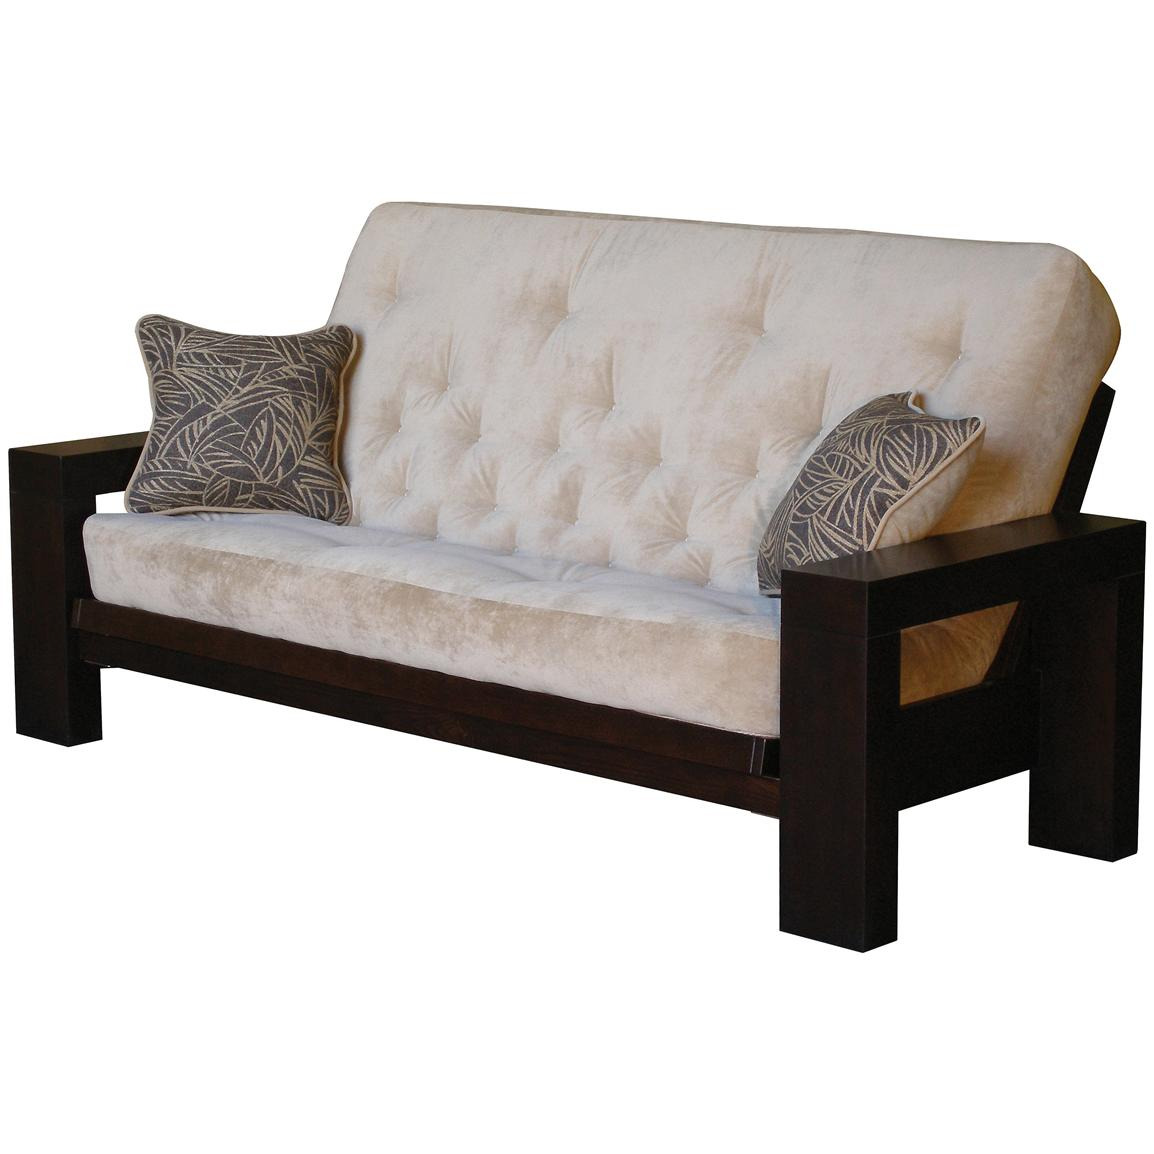 soho espresso full futon with tdc mattress 151916 living room soho luxe upholstered arm chair